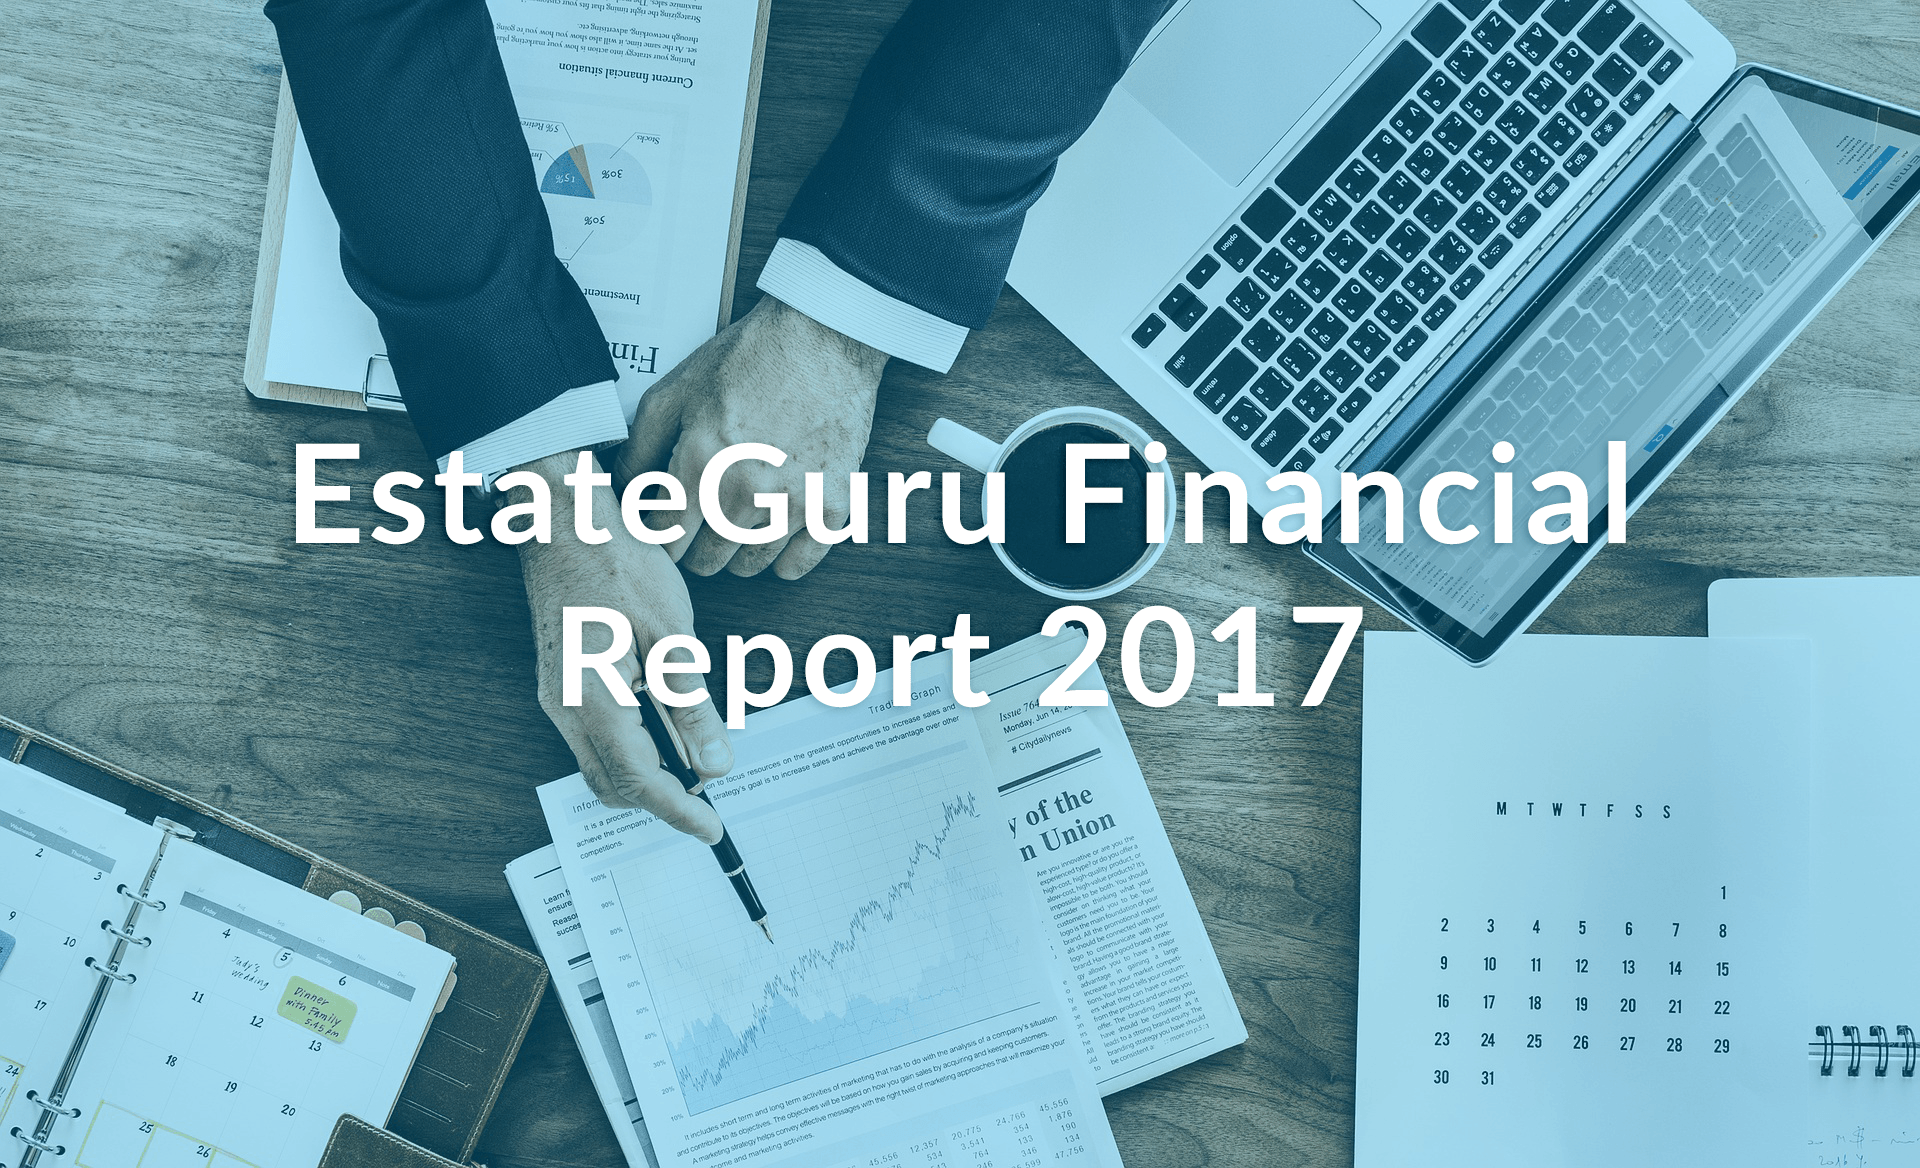 EstateGuru Financial Report 2017